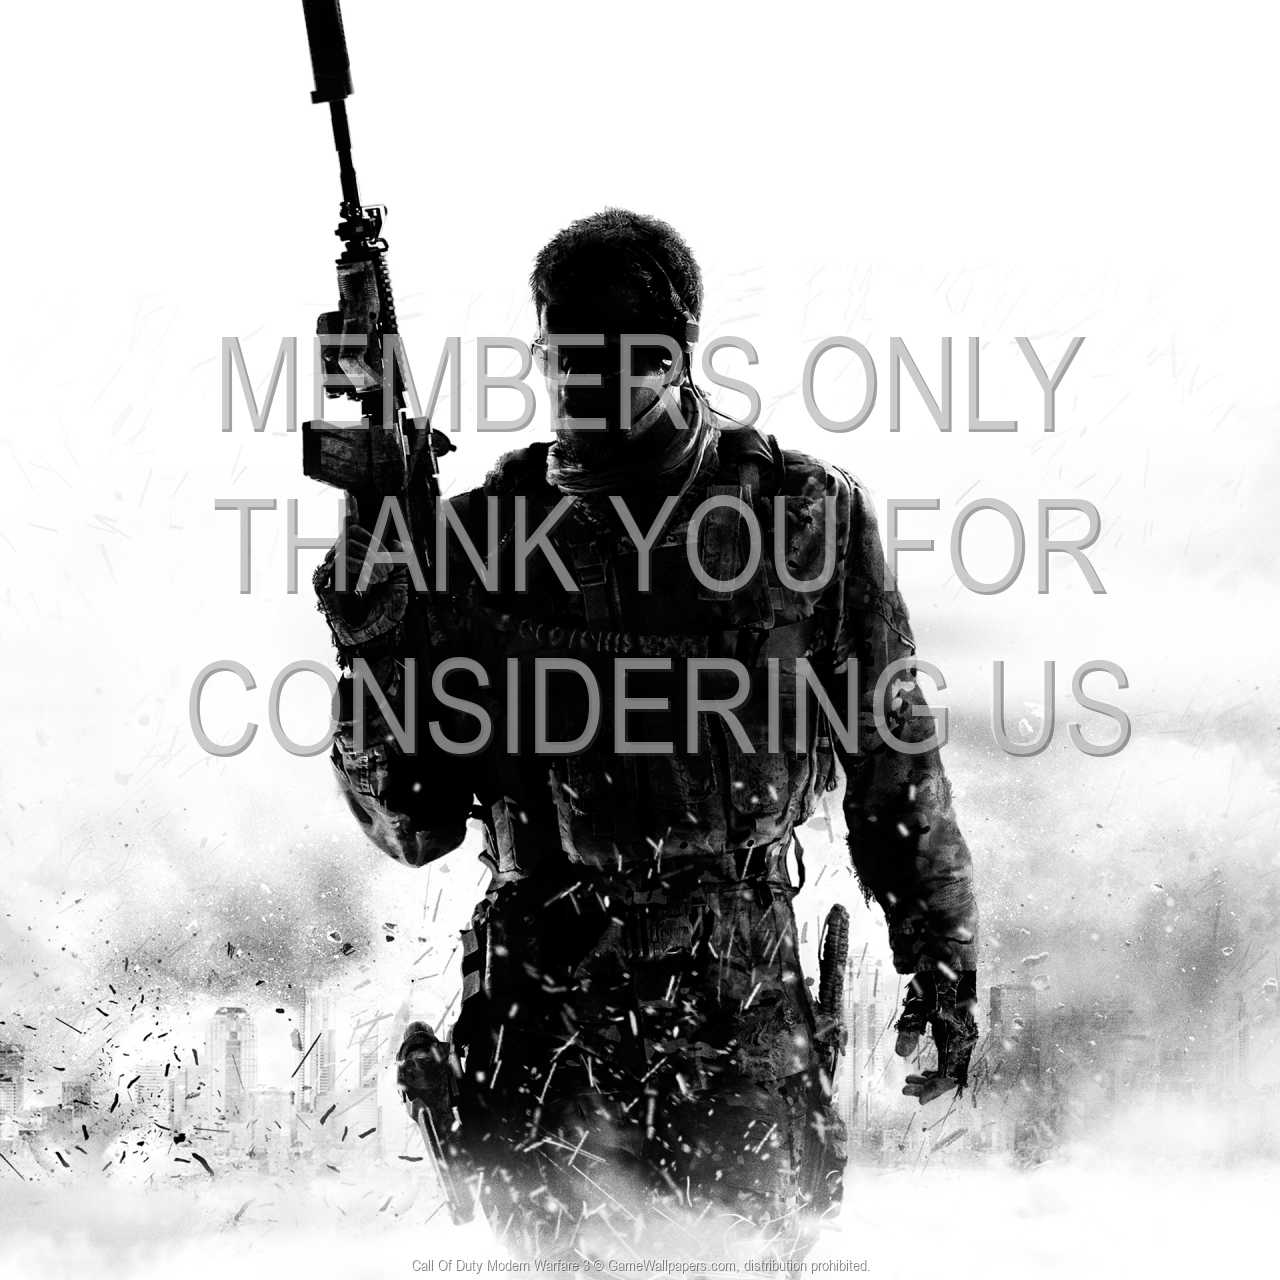 Call Of Duty: Modern Warfare 3 720p Horizontal Mobile wallpaper or background 01